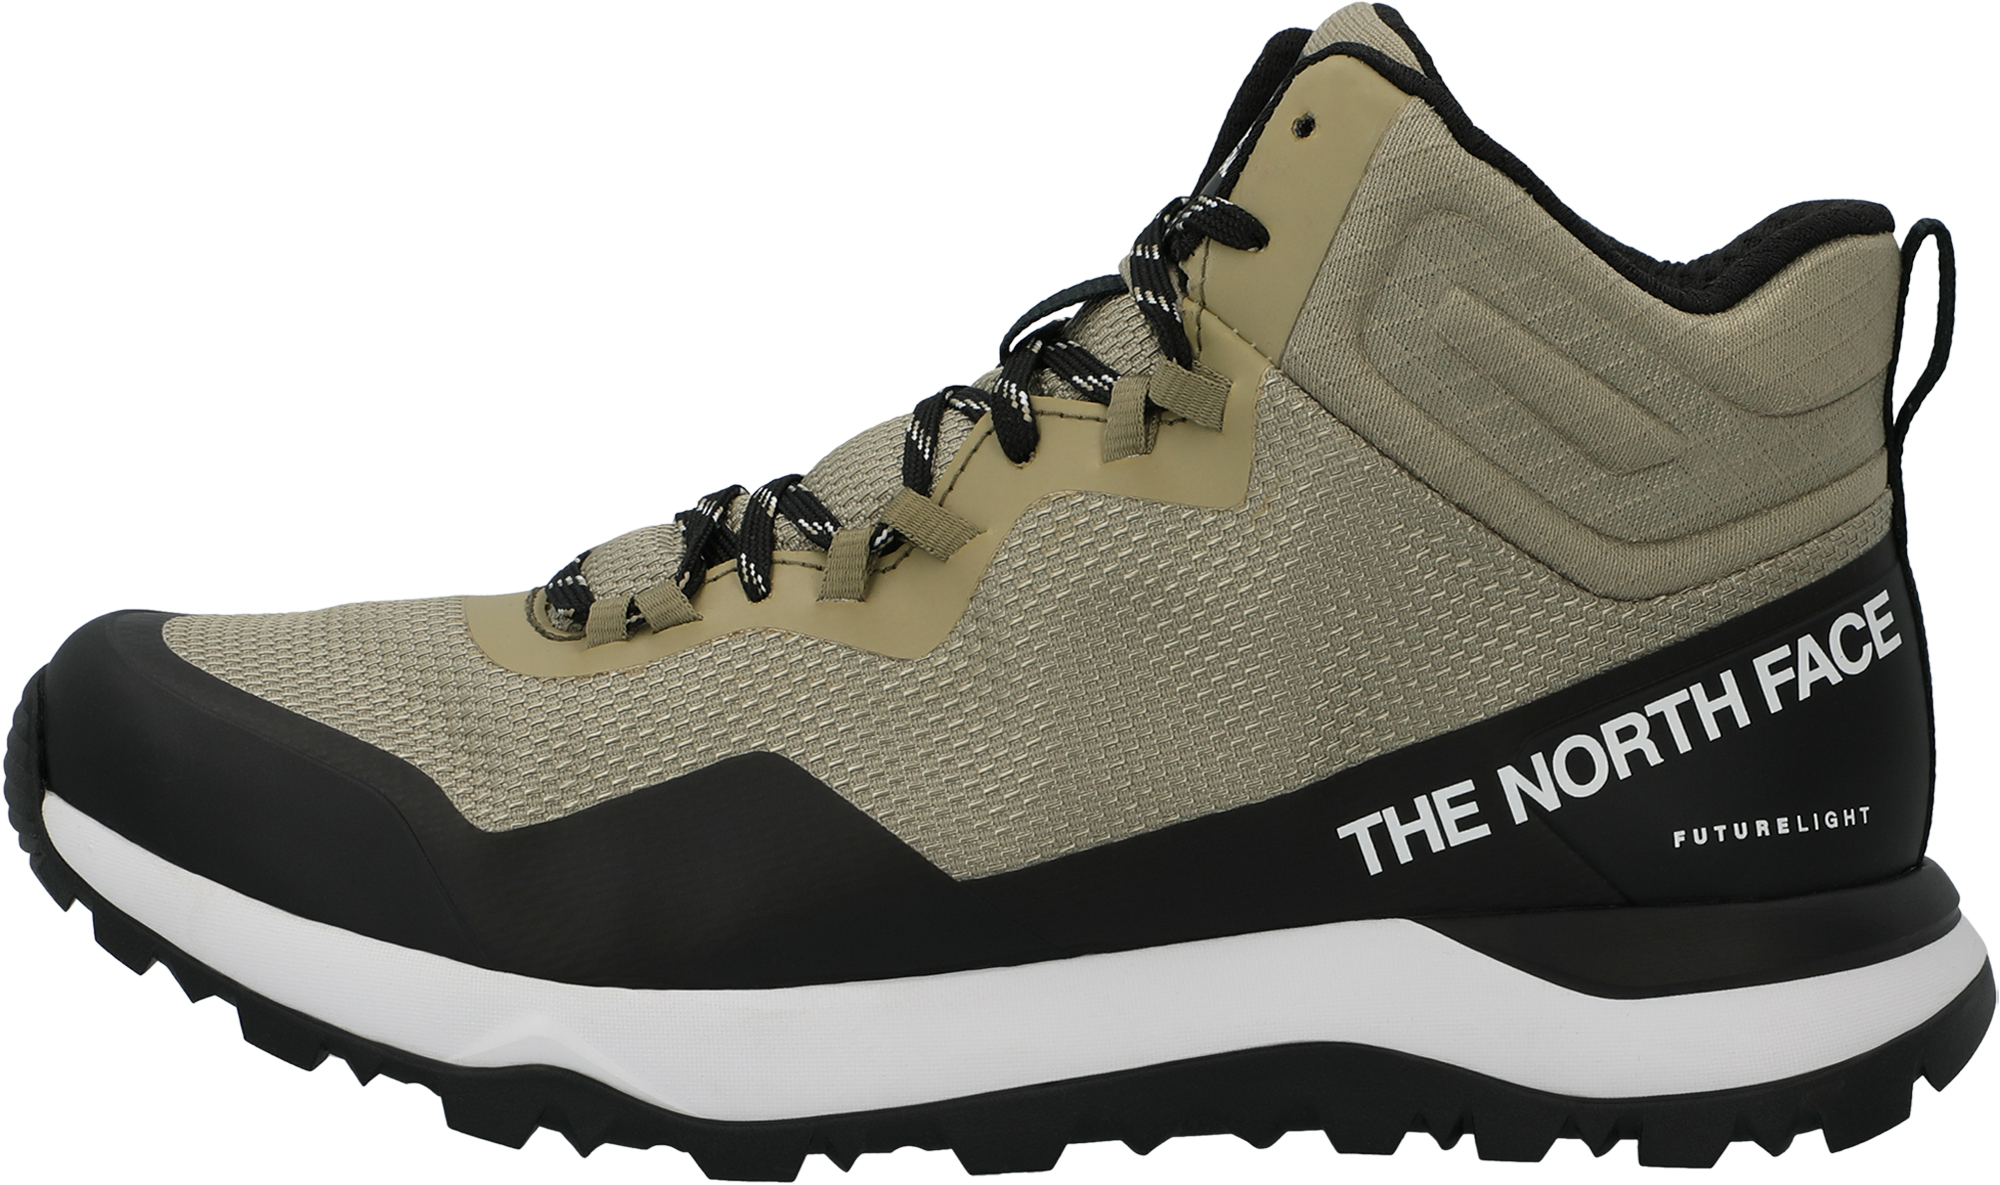 The North Face Ботинки мужские The North Face Activist Mid FutureLight, размер 43